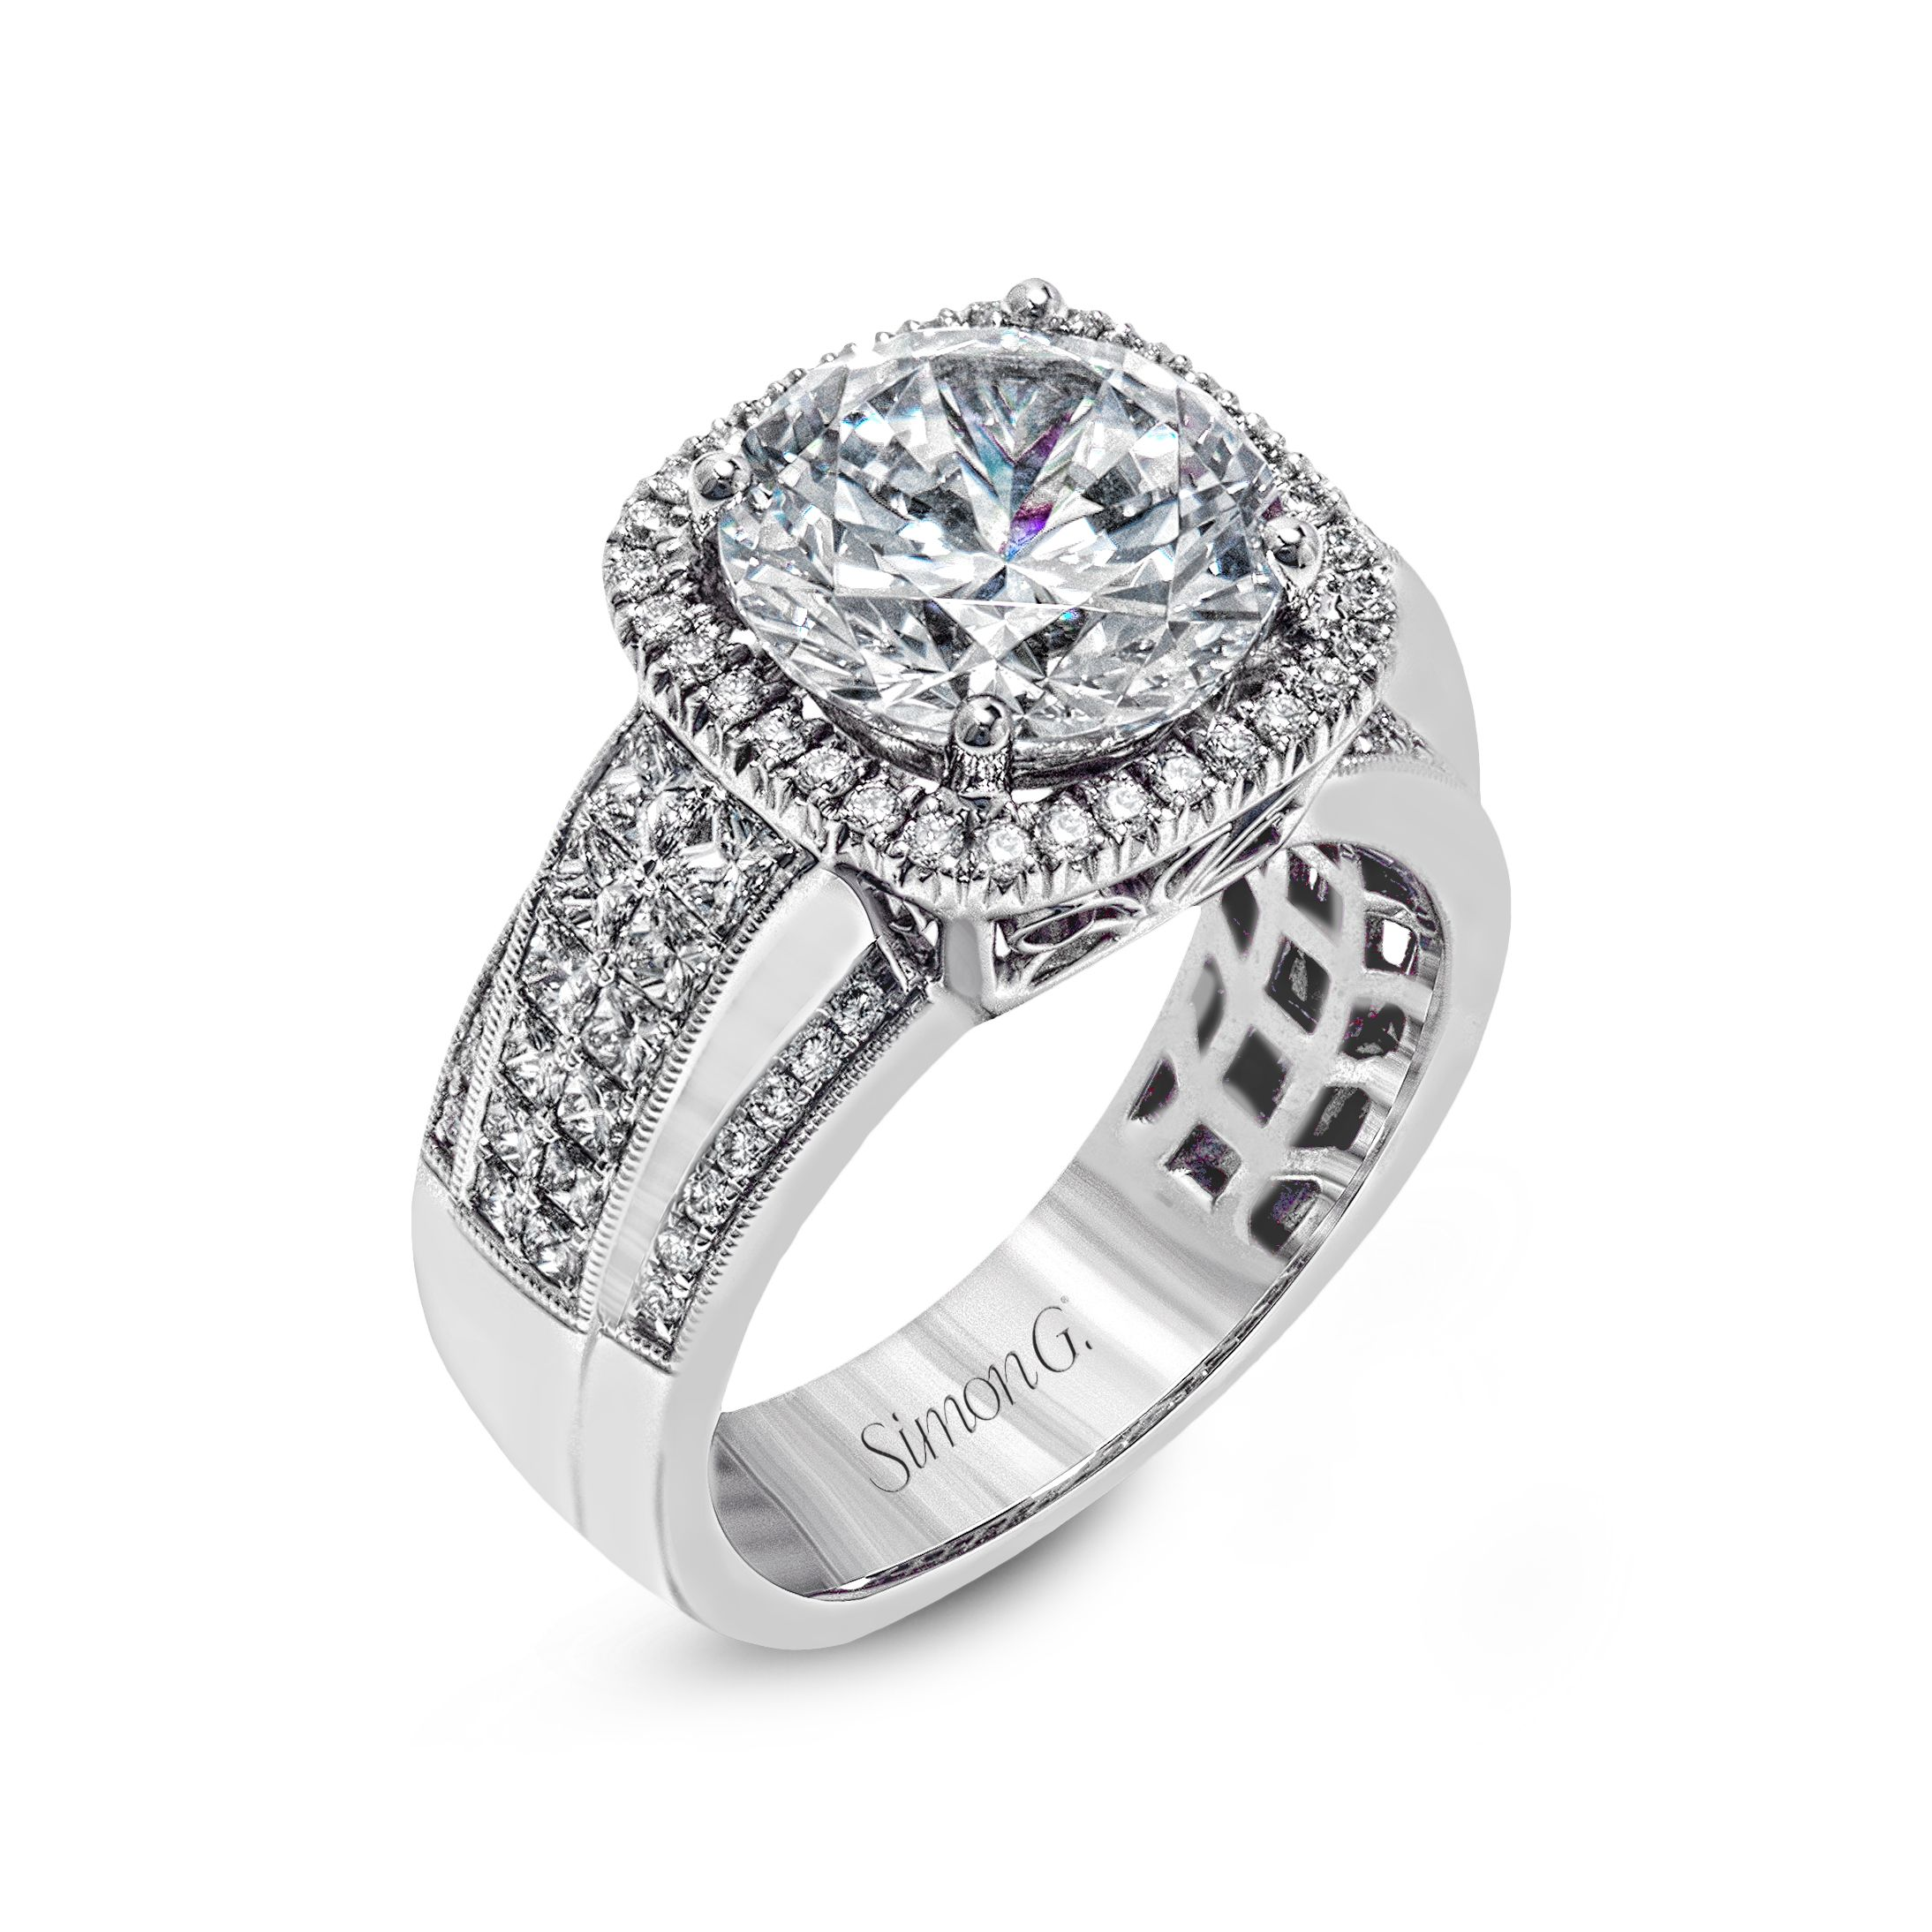 jewels product anniversary tashne by emerald band sapphire rings simon ladies g engagement sa